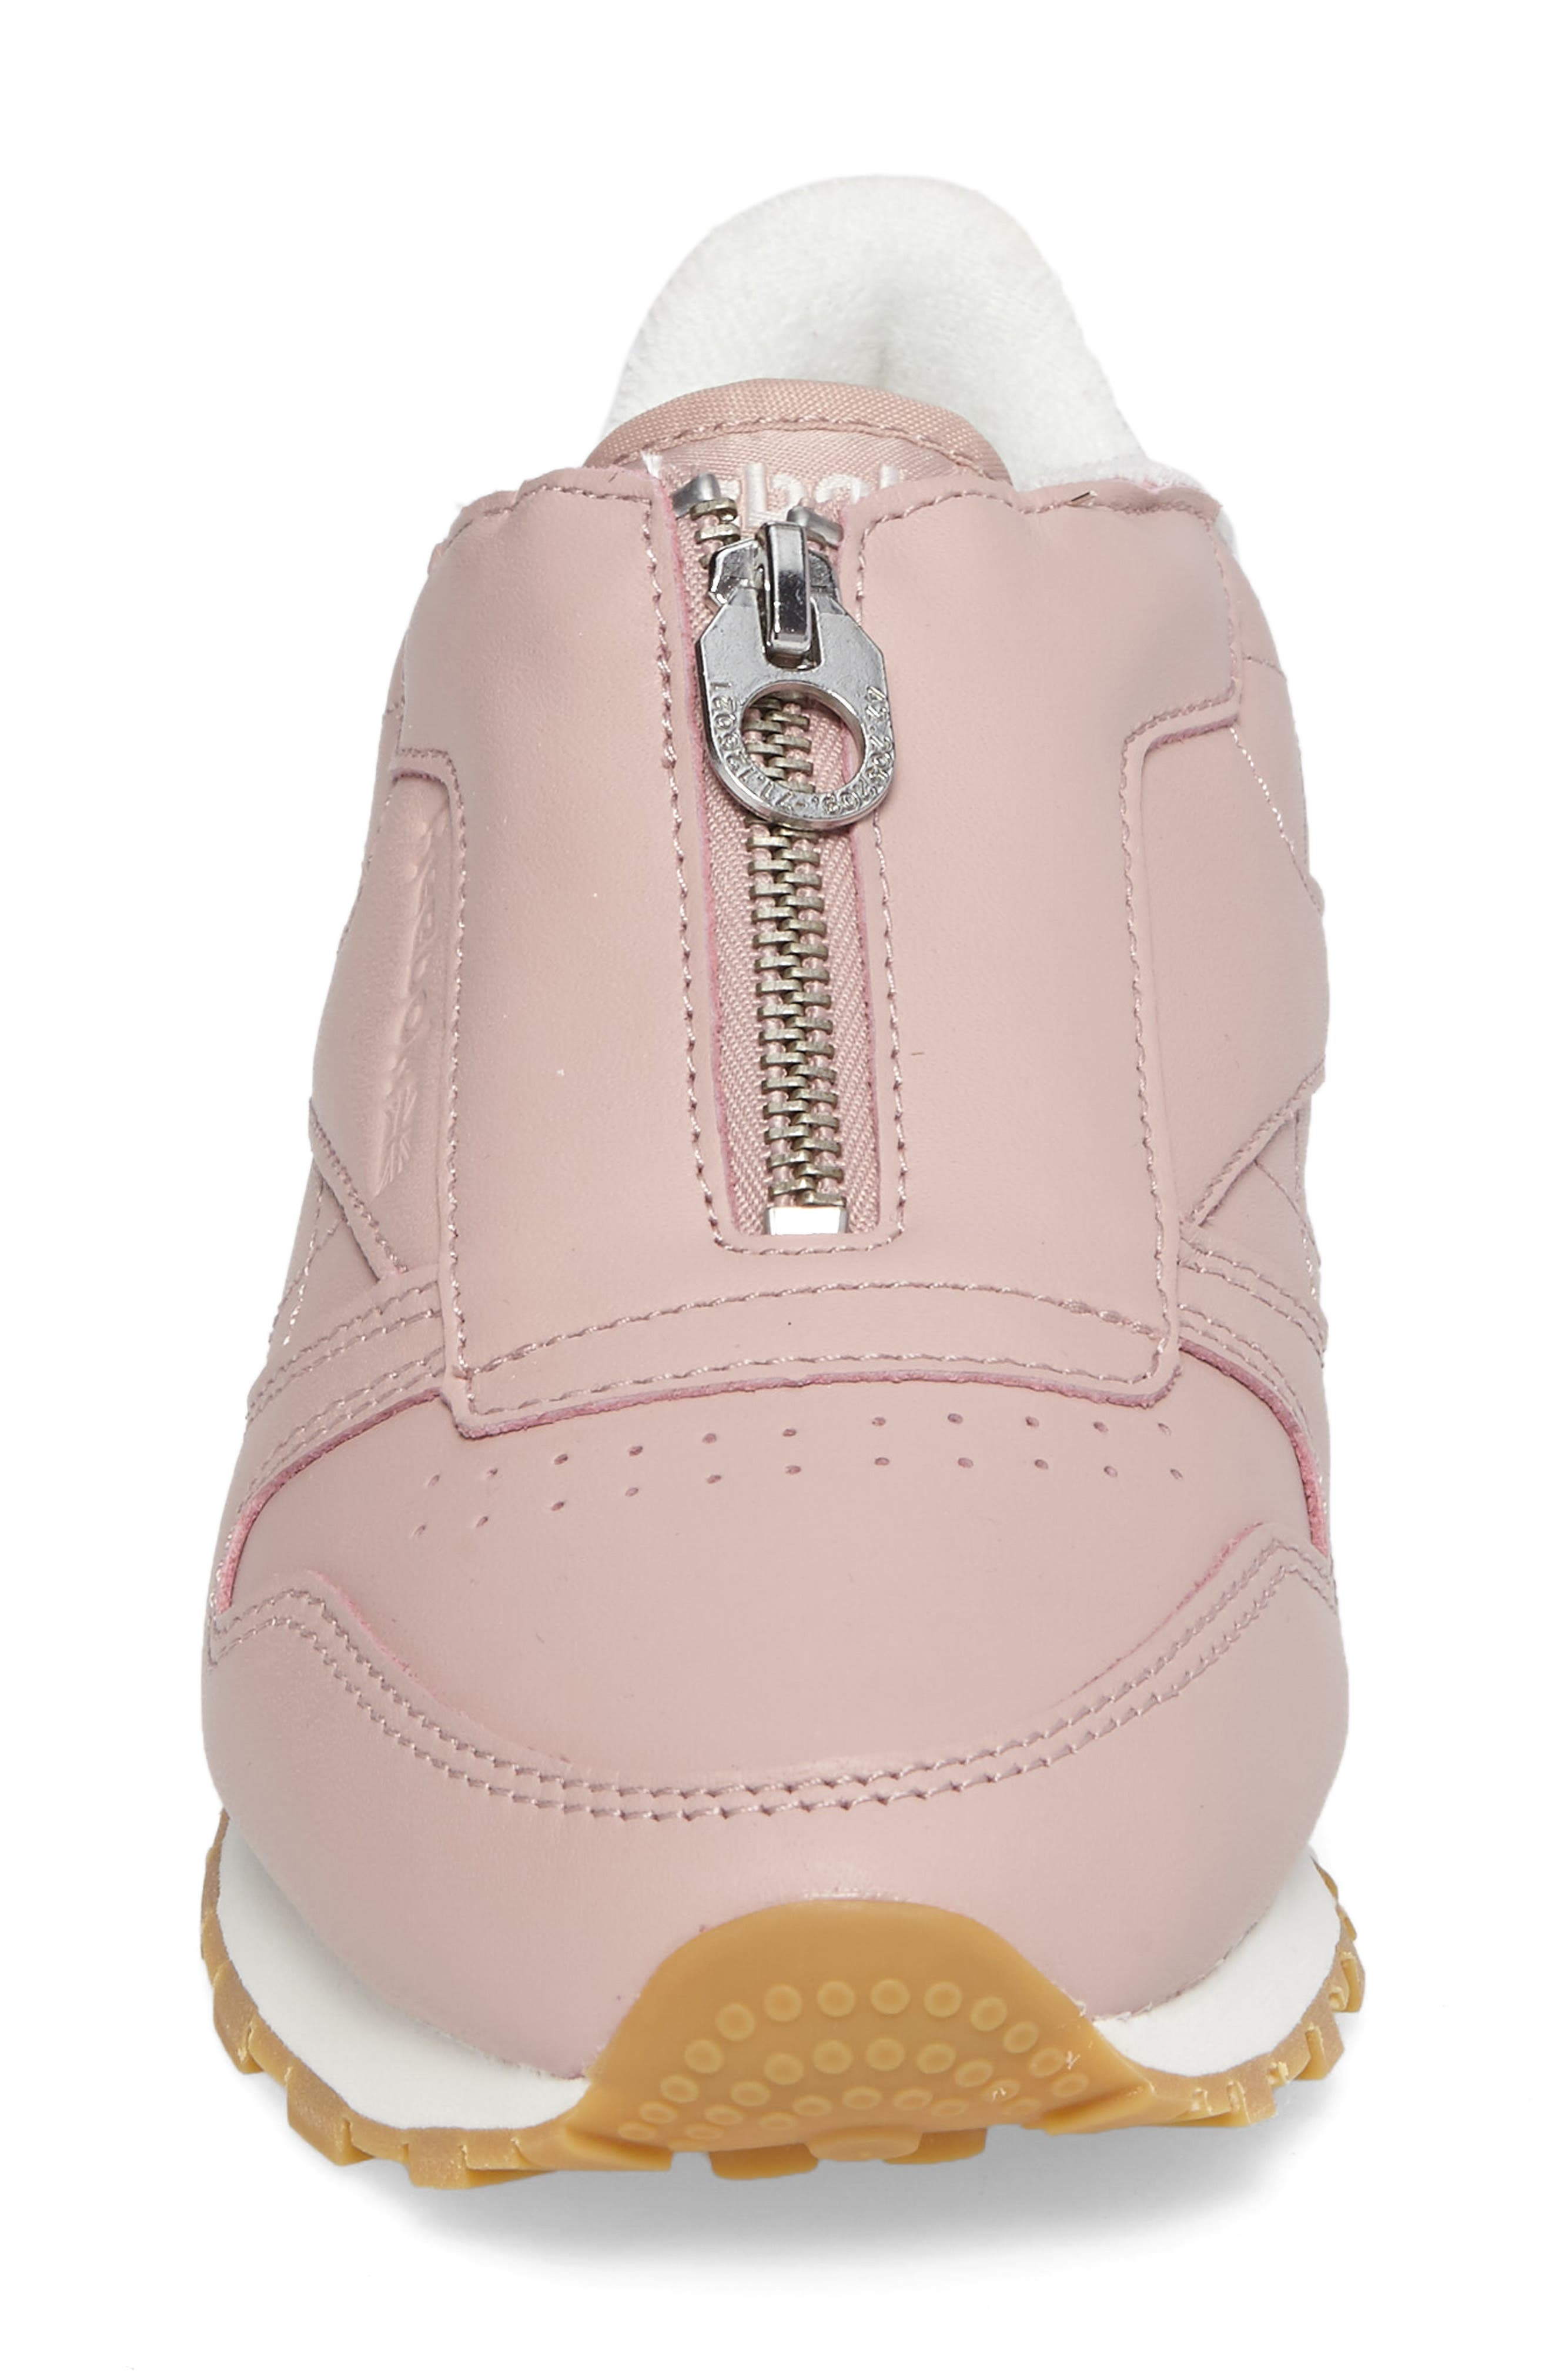 Classic Zip Sneaker,                             Alternate thumbnail 4, color,                             Shell Pink/ Chalk/ Silver